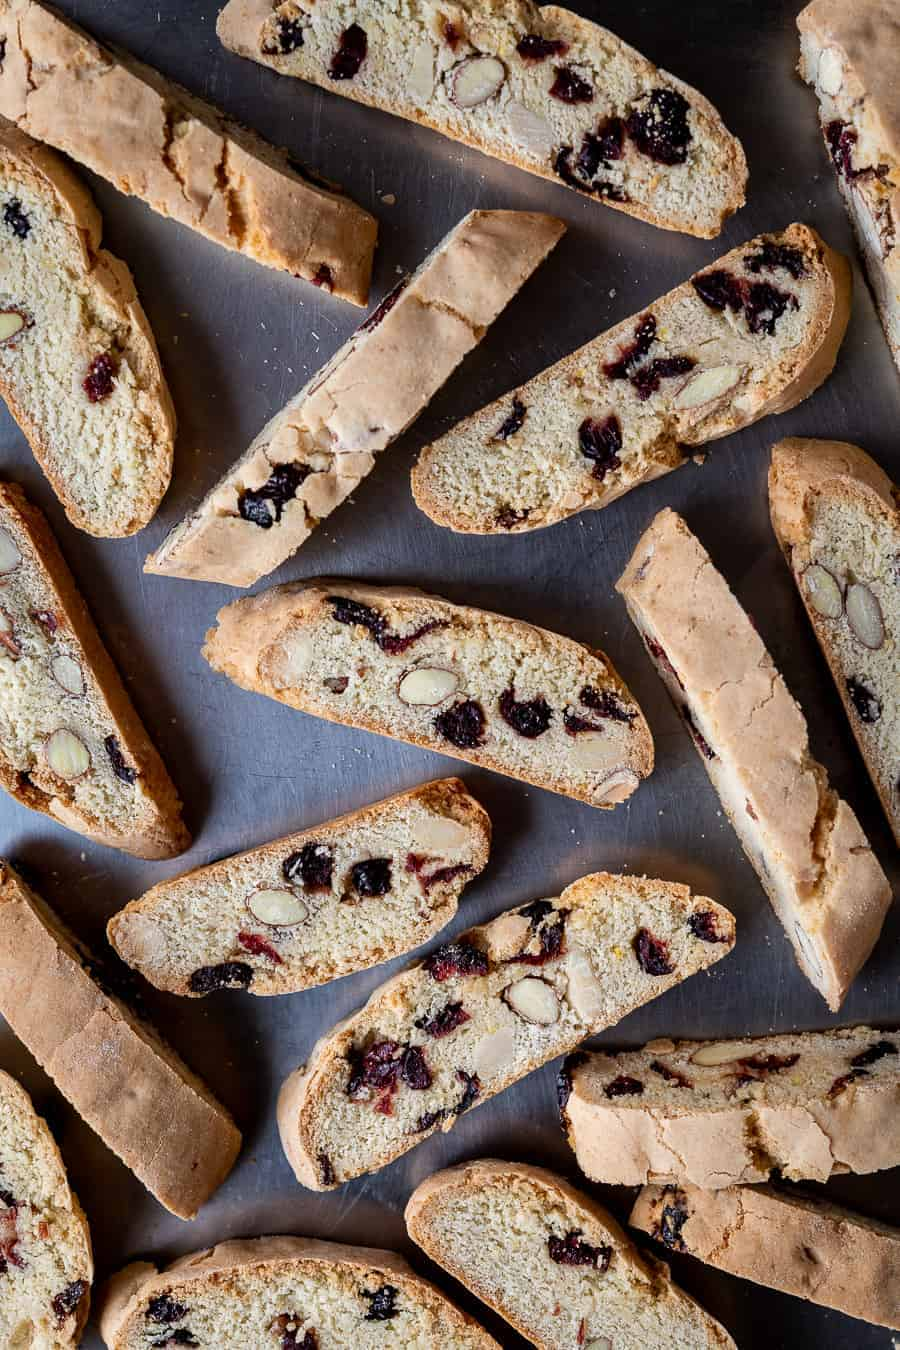 vegan biscotti on a metal background.